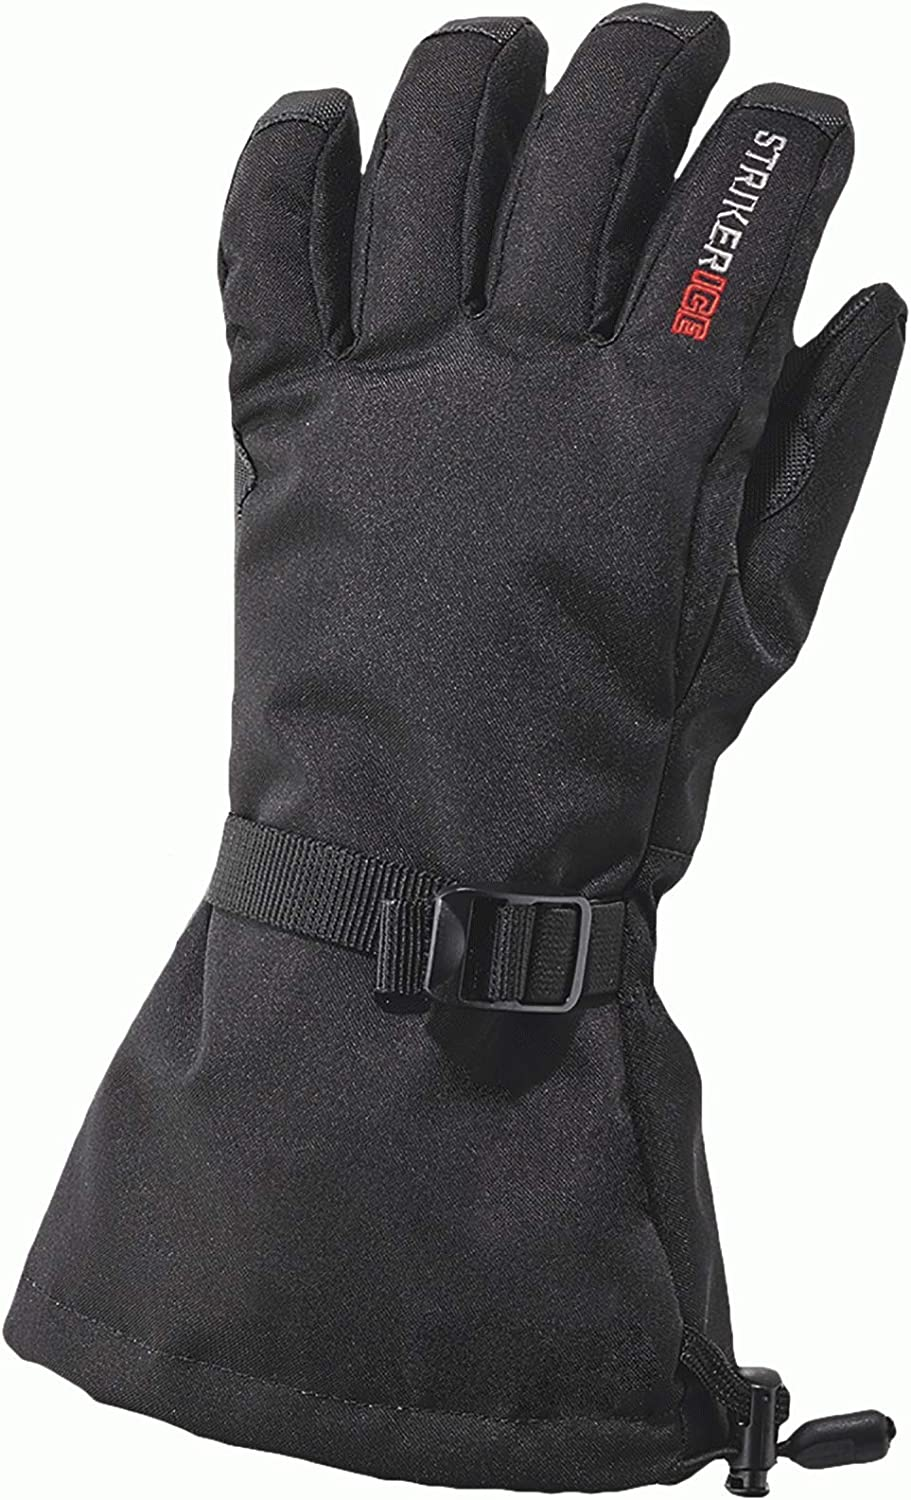 StrikerICE Youth Super sale period limited Climate Glove Ranking TOP1